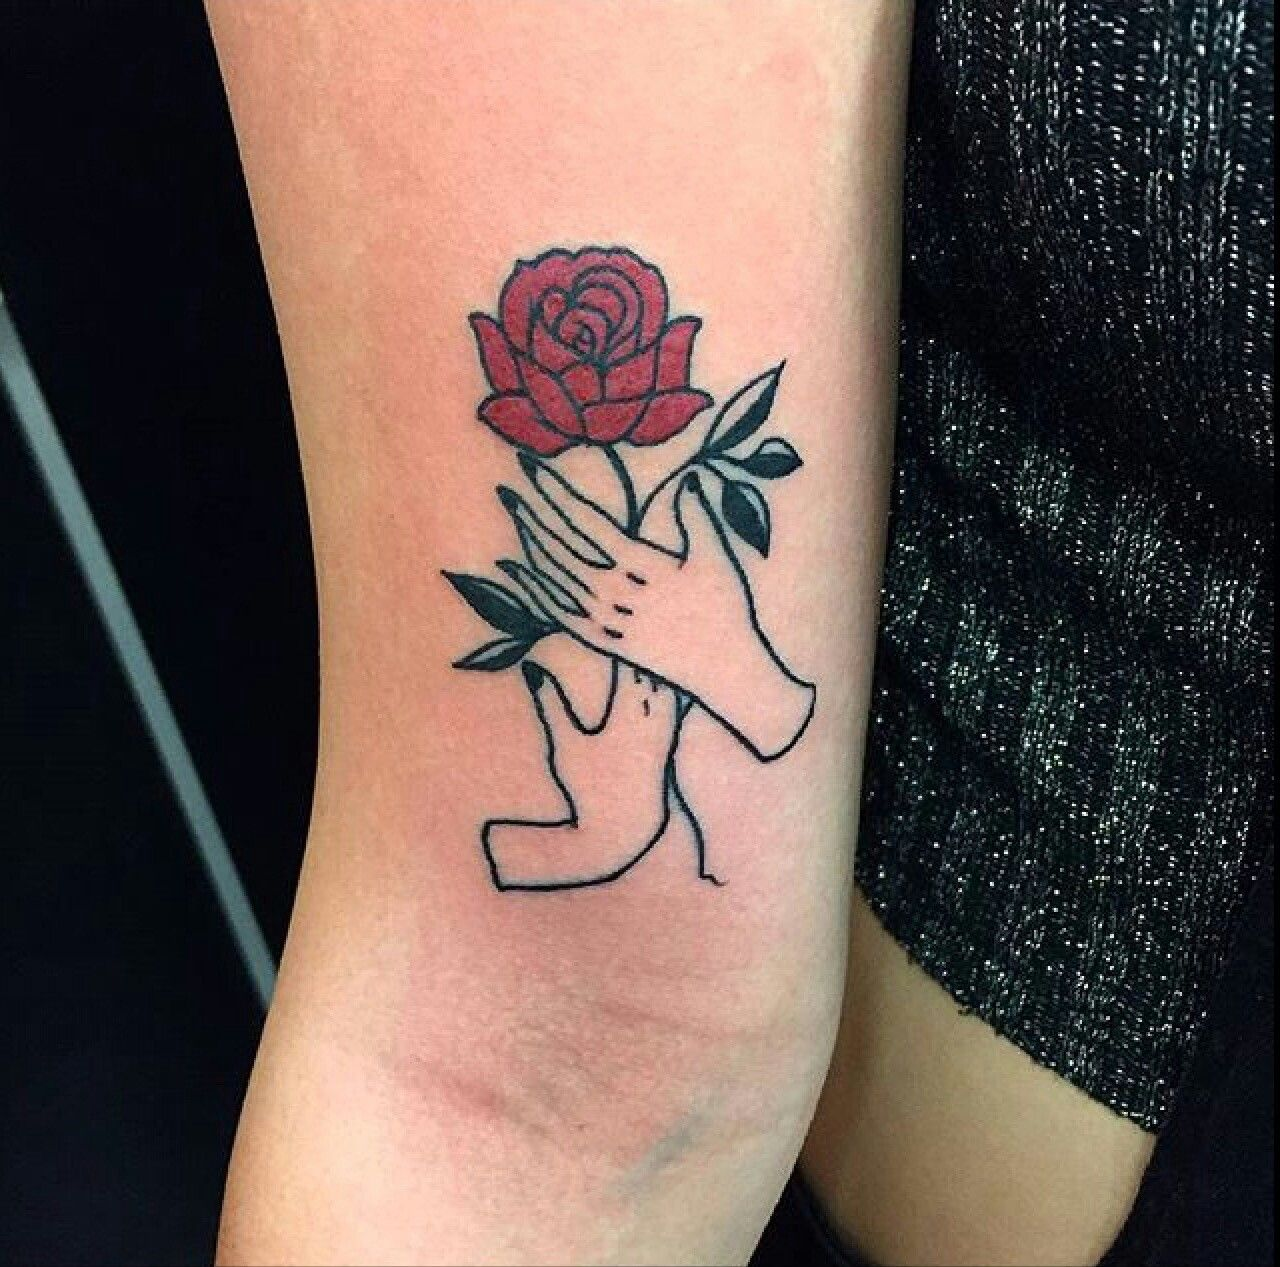 Cool little tattoo ideas pin by jenna mcmaster on tattoo ideas  pinterest  tattoo